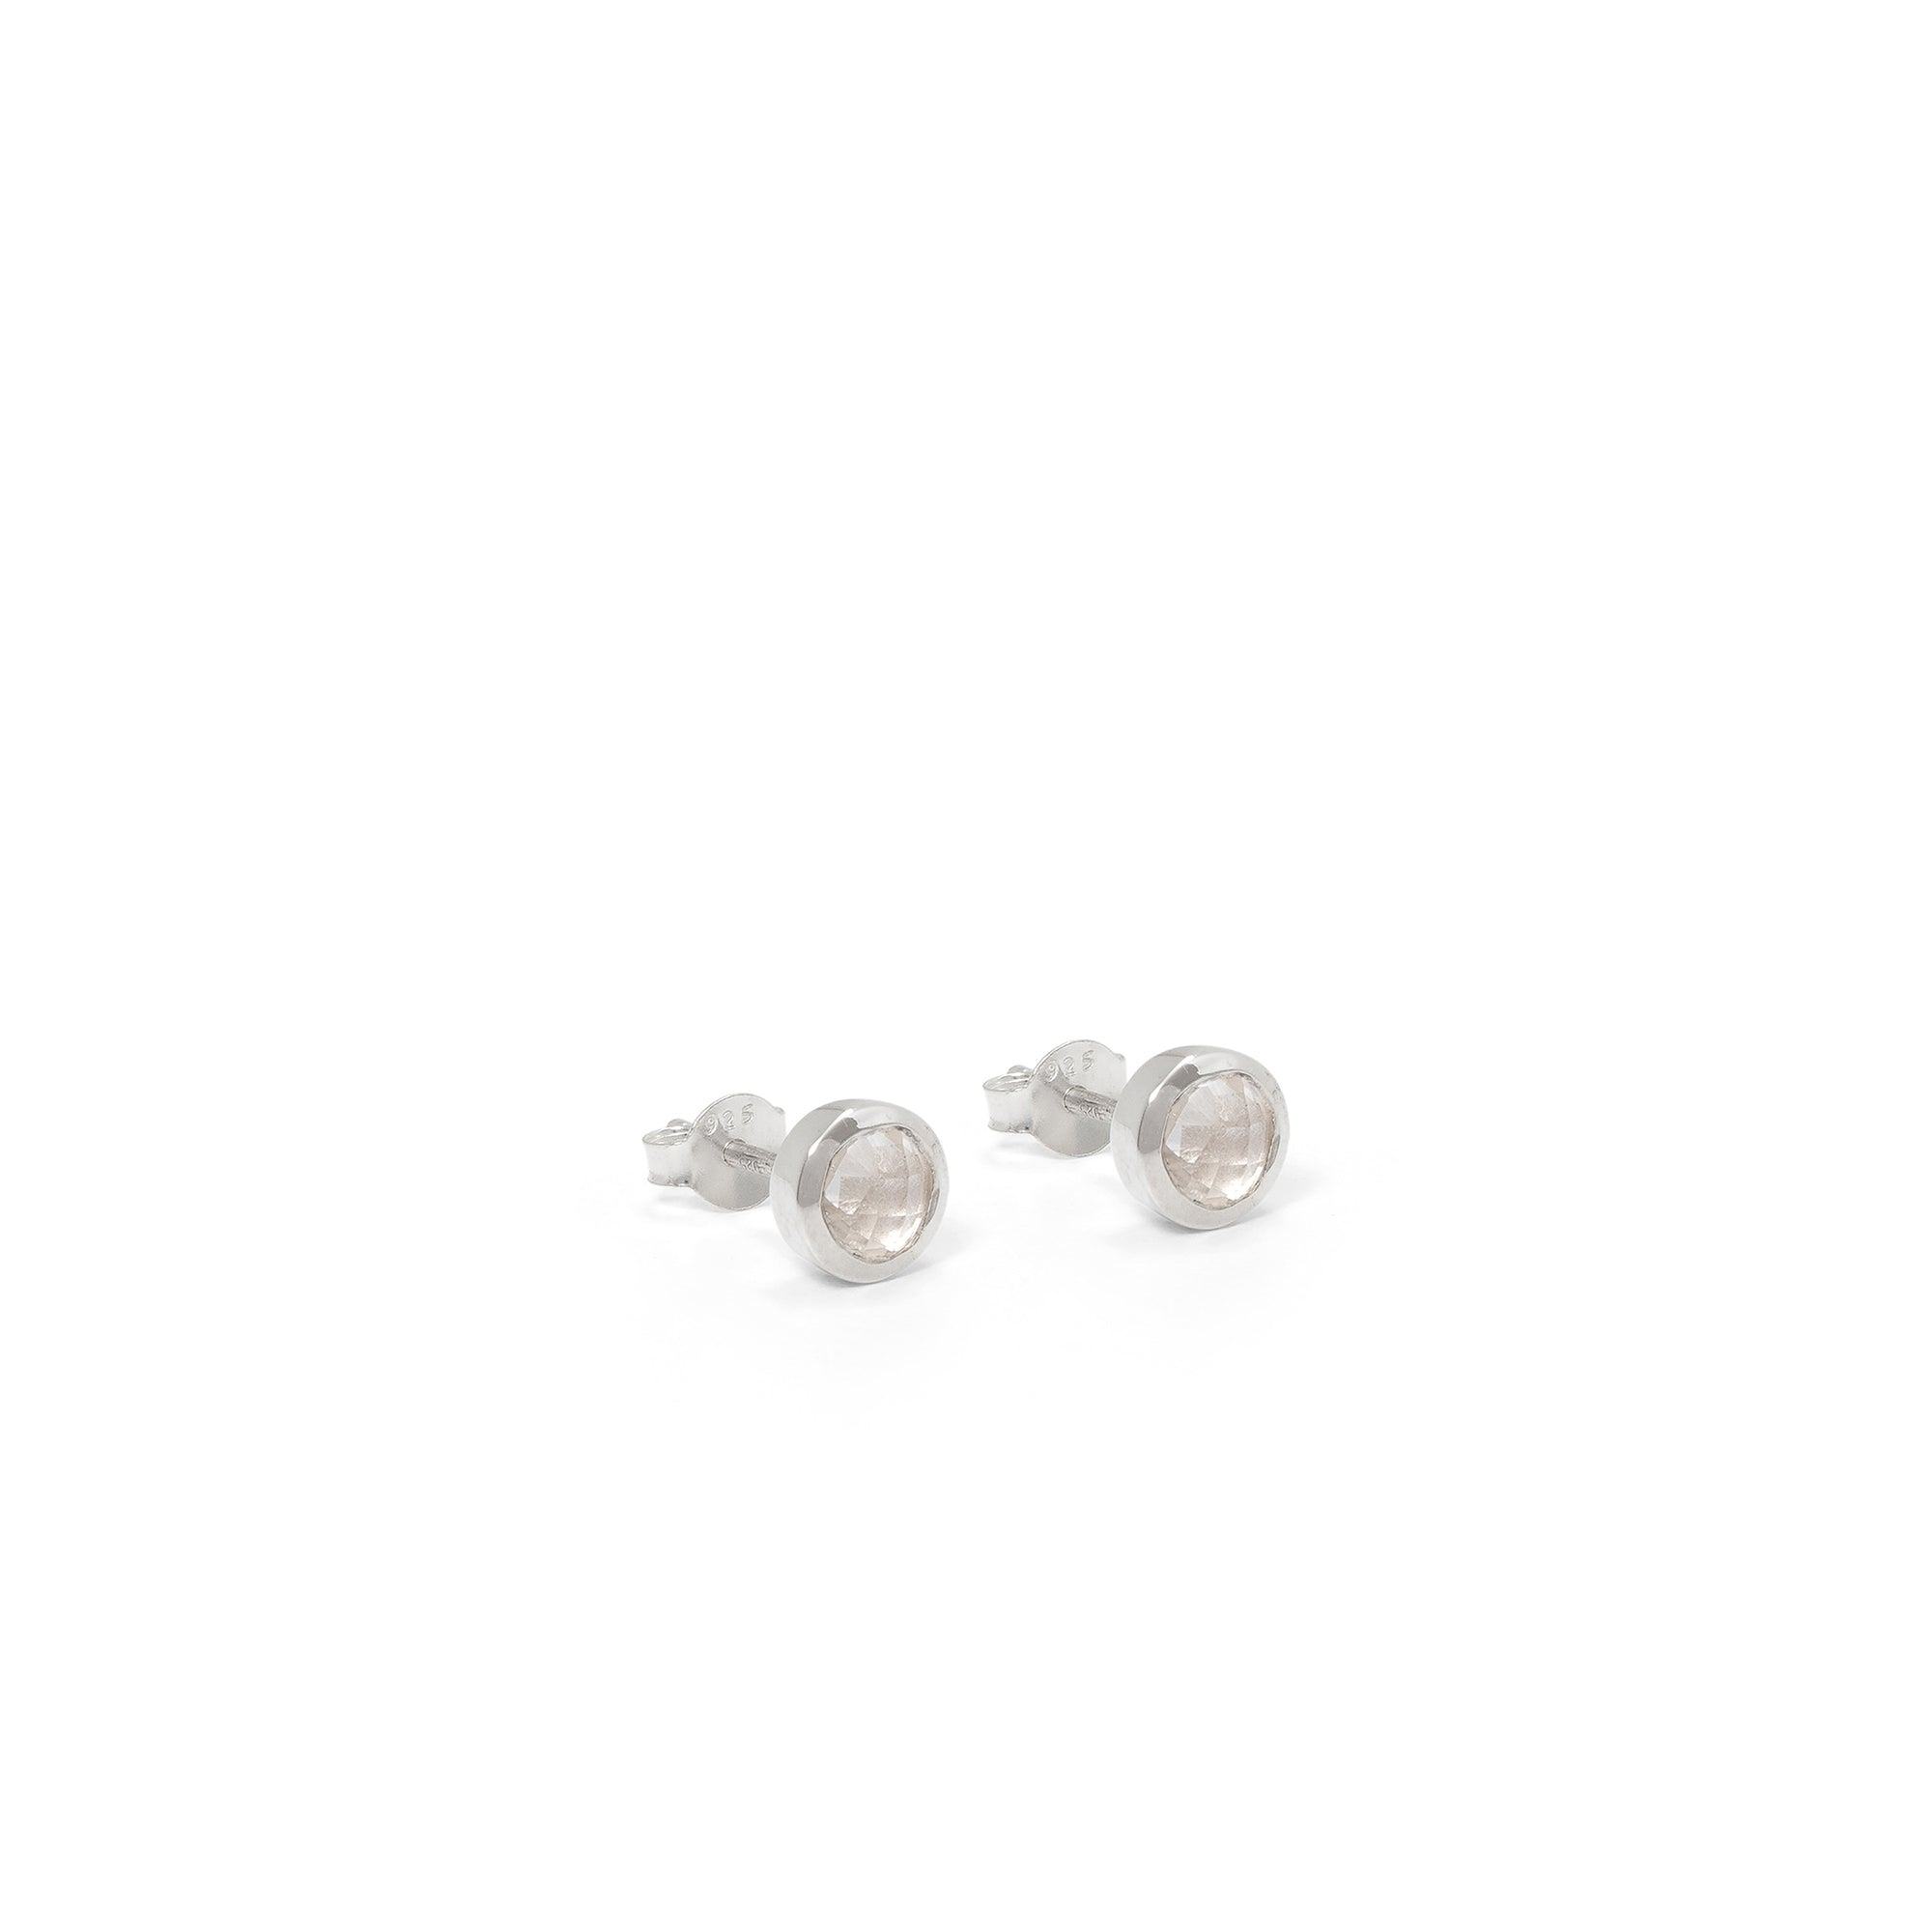 Birthstone Stud Earrings April: Rock Crystal and Sterling Silver